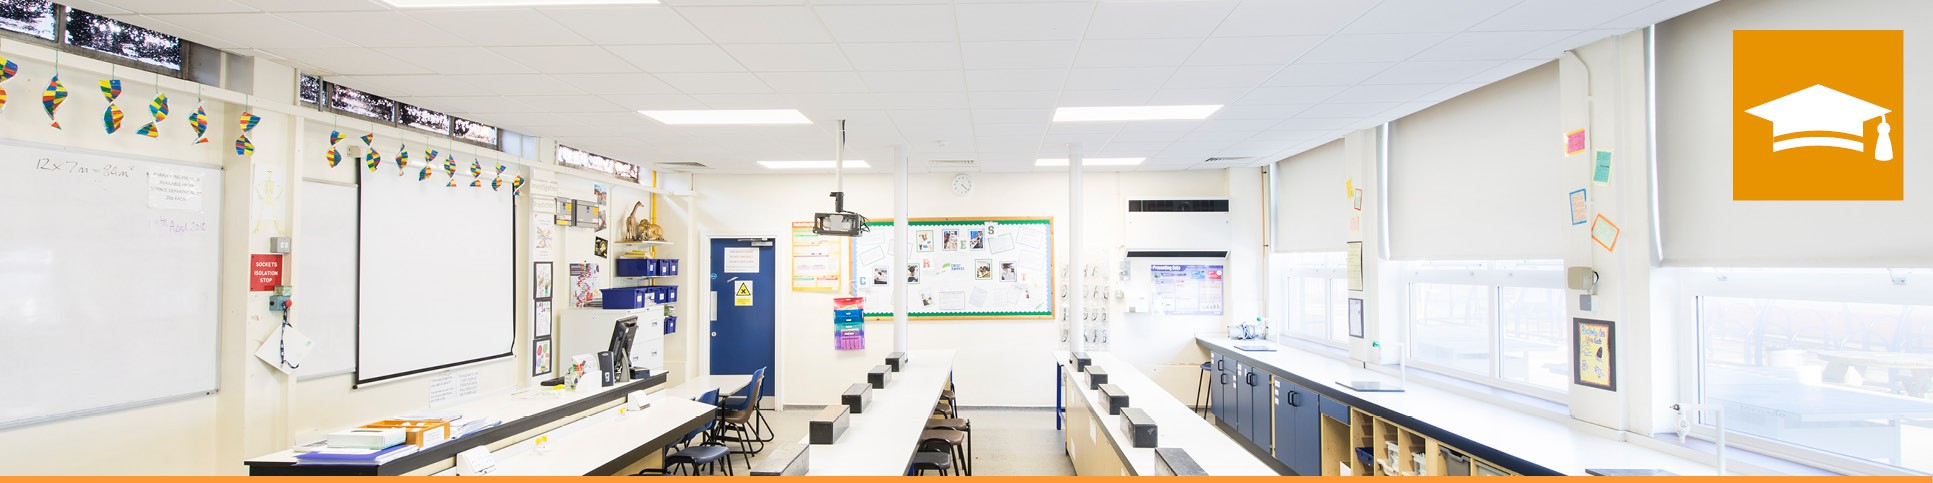 Lighting for Education Wellbeing